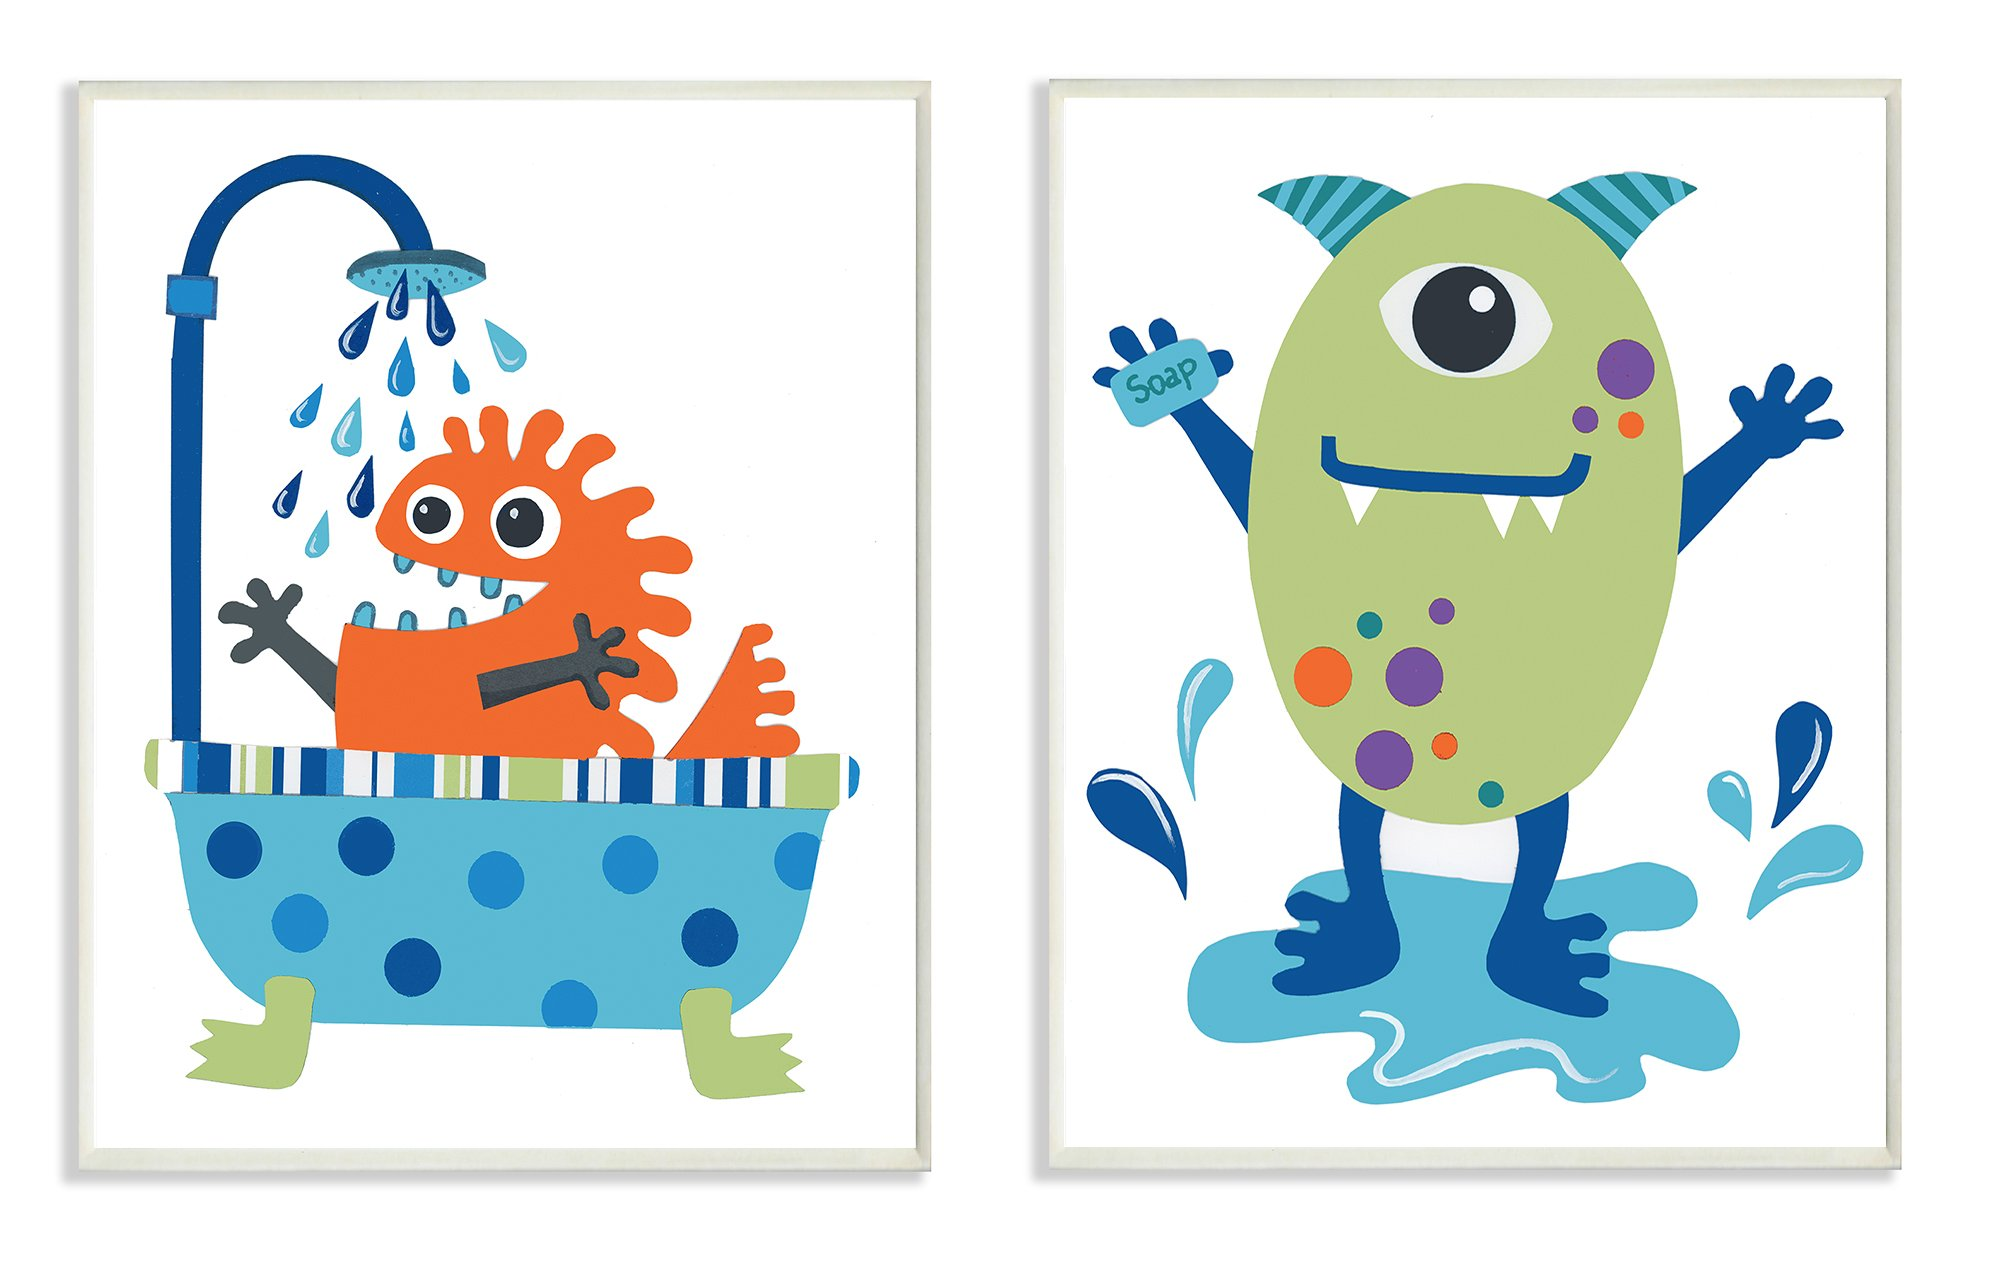 Stupell Home Décor Monsters Bathroom Buddies 2pc Wall Plaque Art Set, 10 x 0.5 x 15, Proudly Made in USA by The Kids Room by Stupell